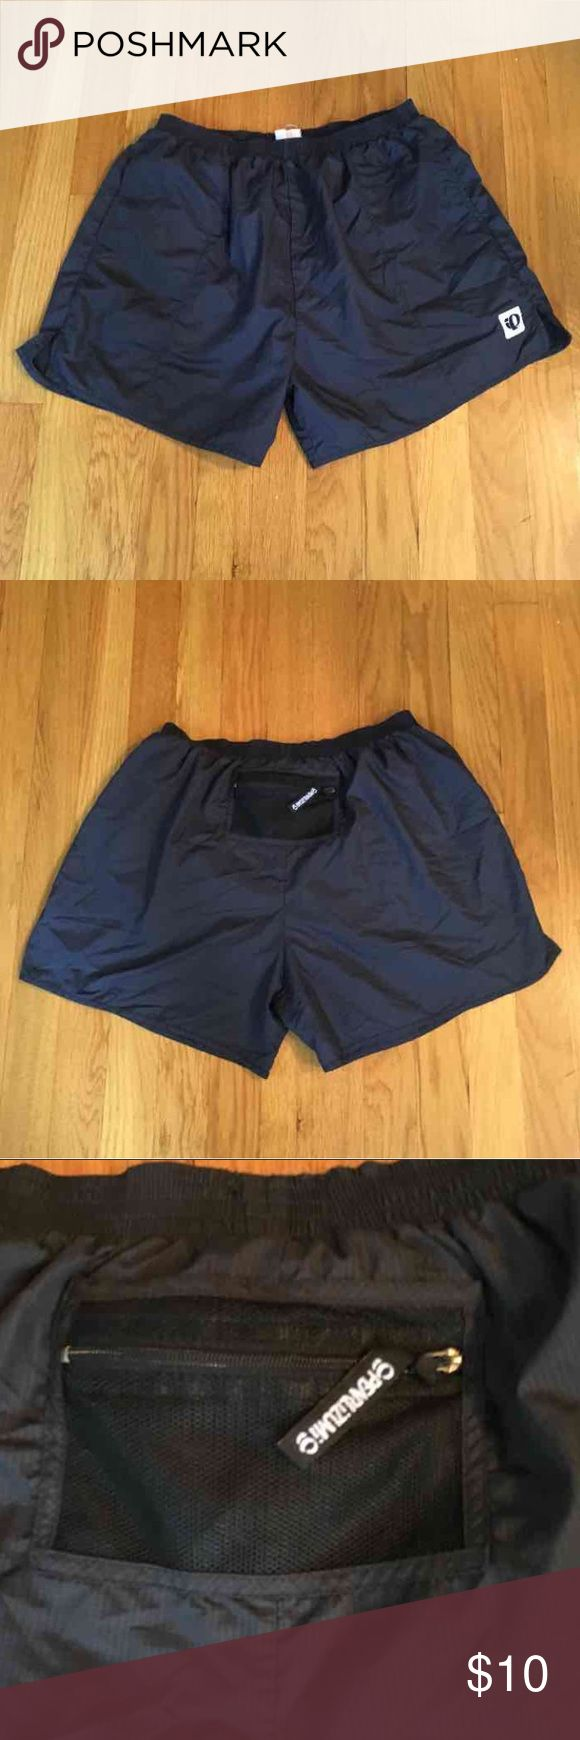 Pearl Izumi Lined Training Shorts Women's Training Shorts.   Pearl Izumi.   Black.   Medium.   In good condition. No rips holes or stains. Pearl Izumi Shorts